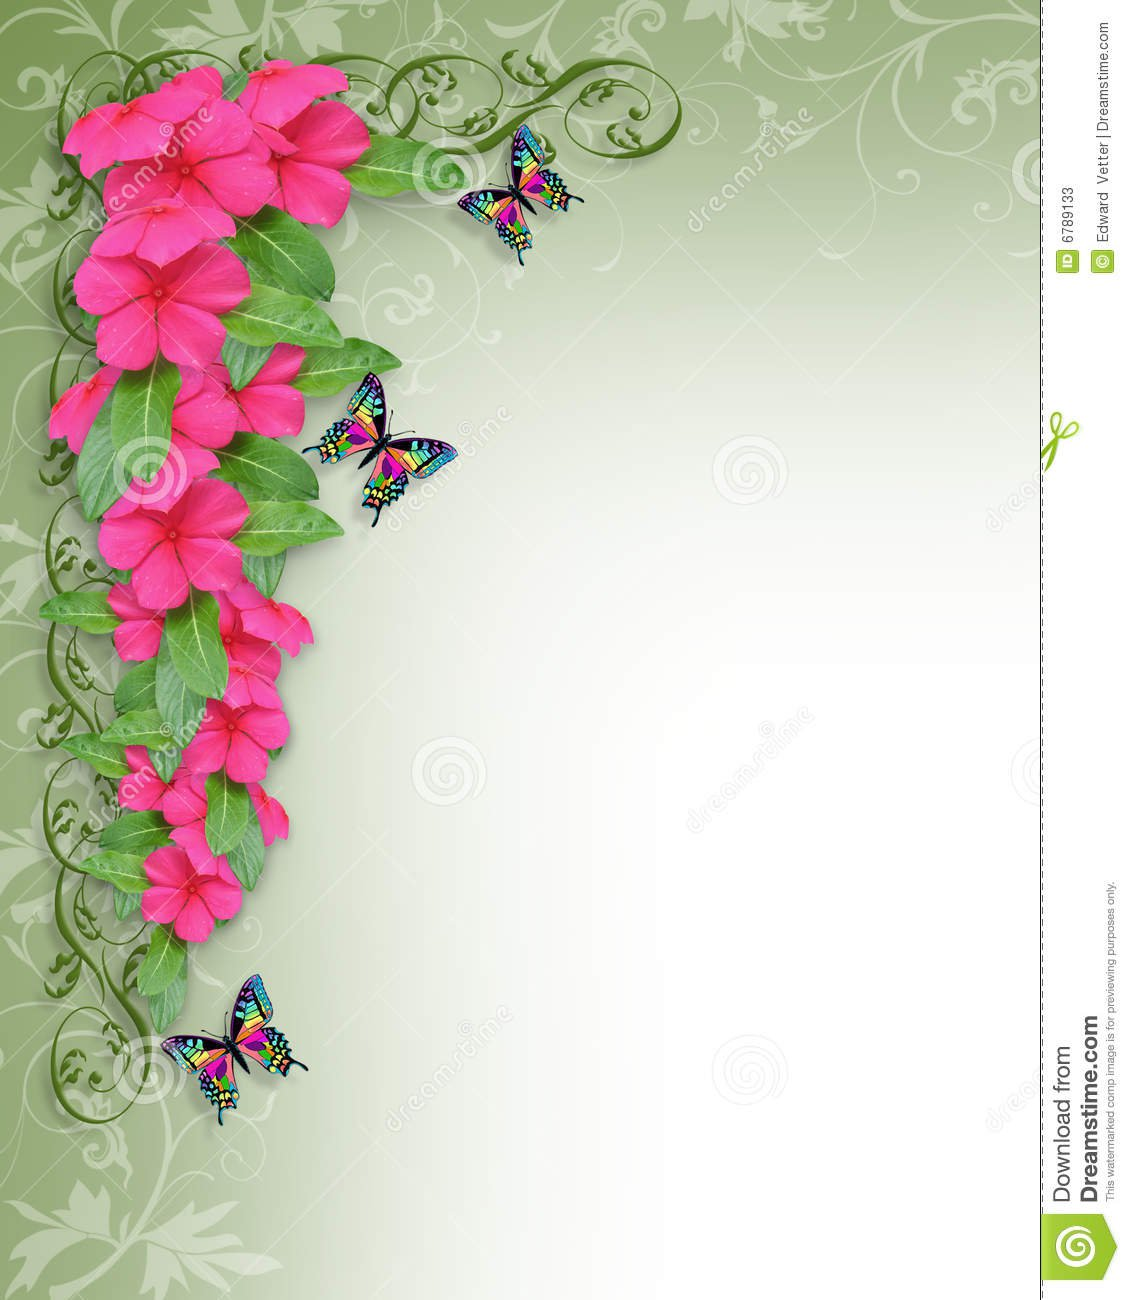 Party Invitation Border Templates